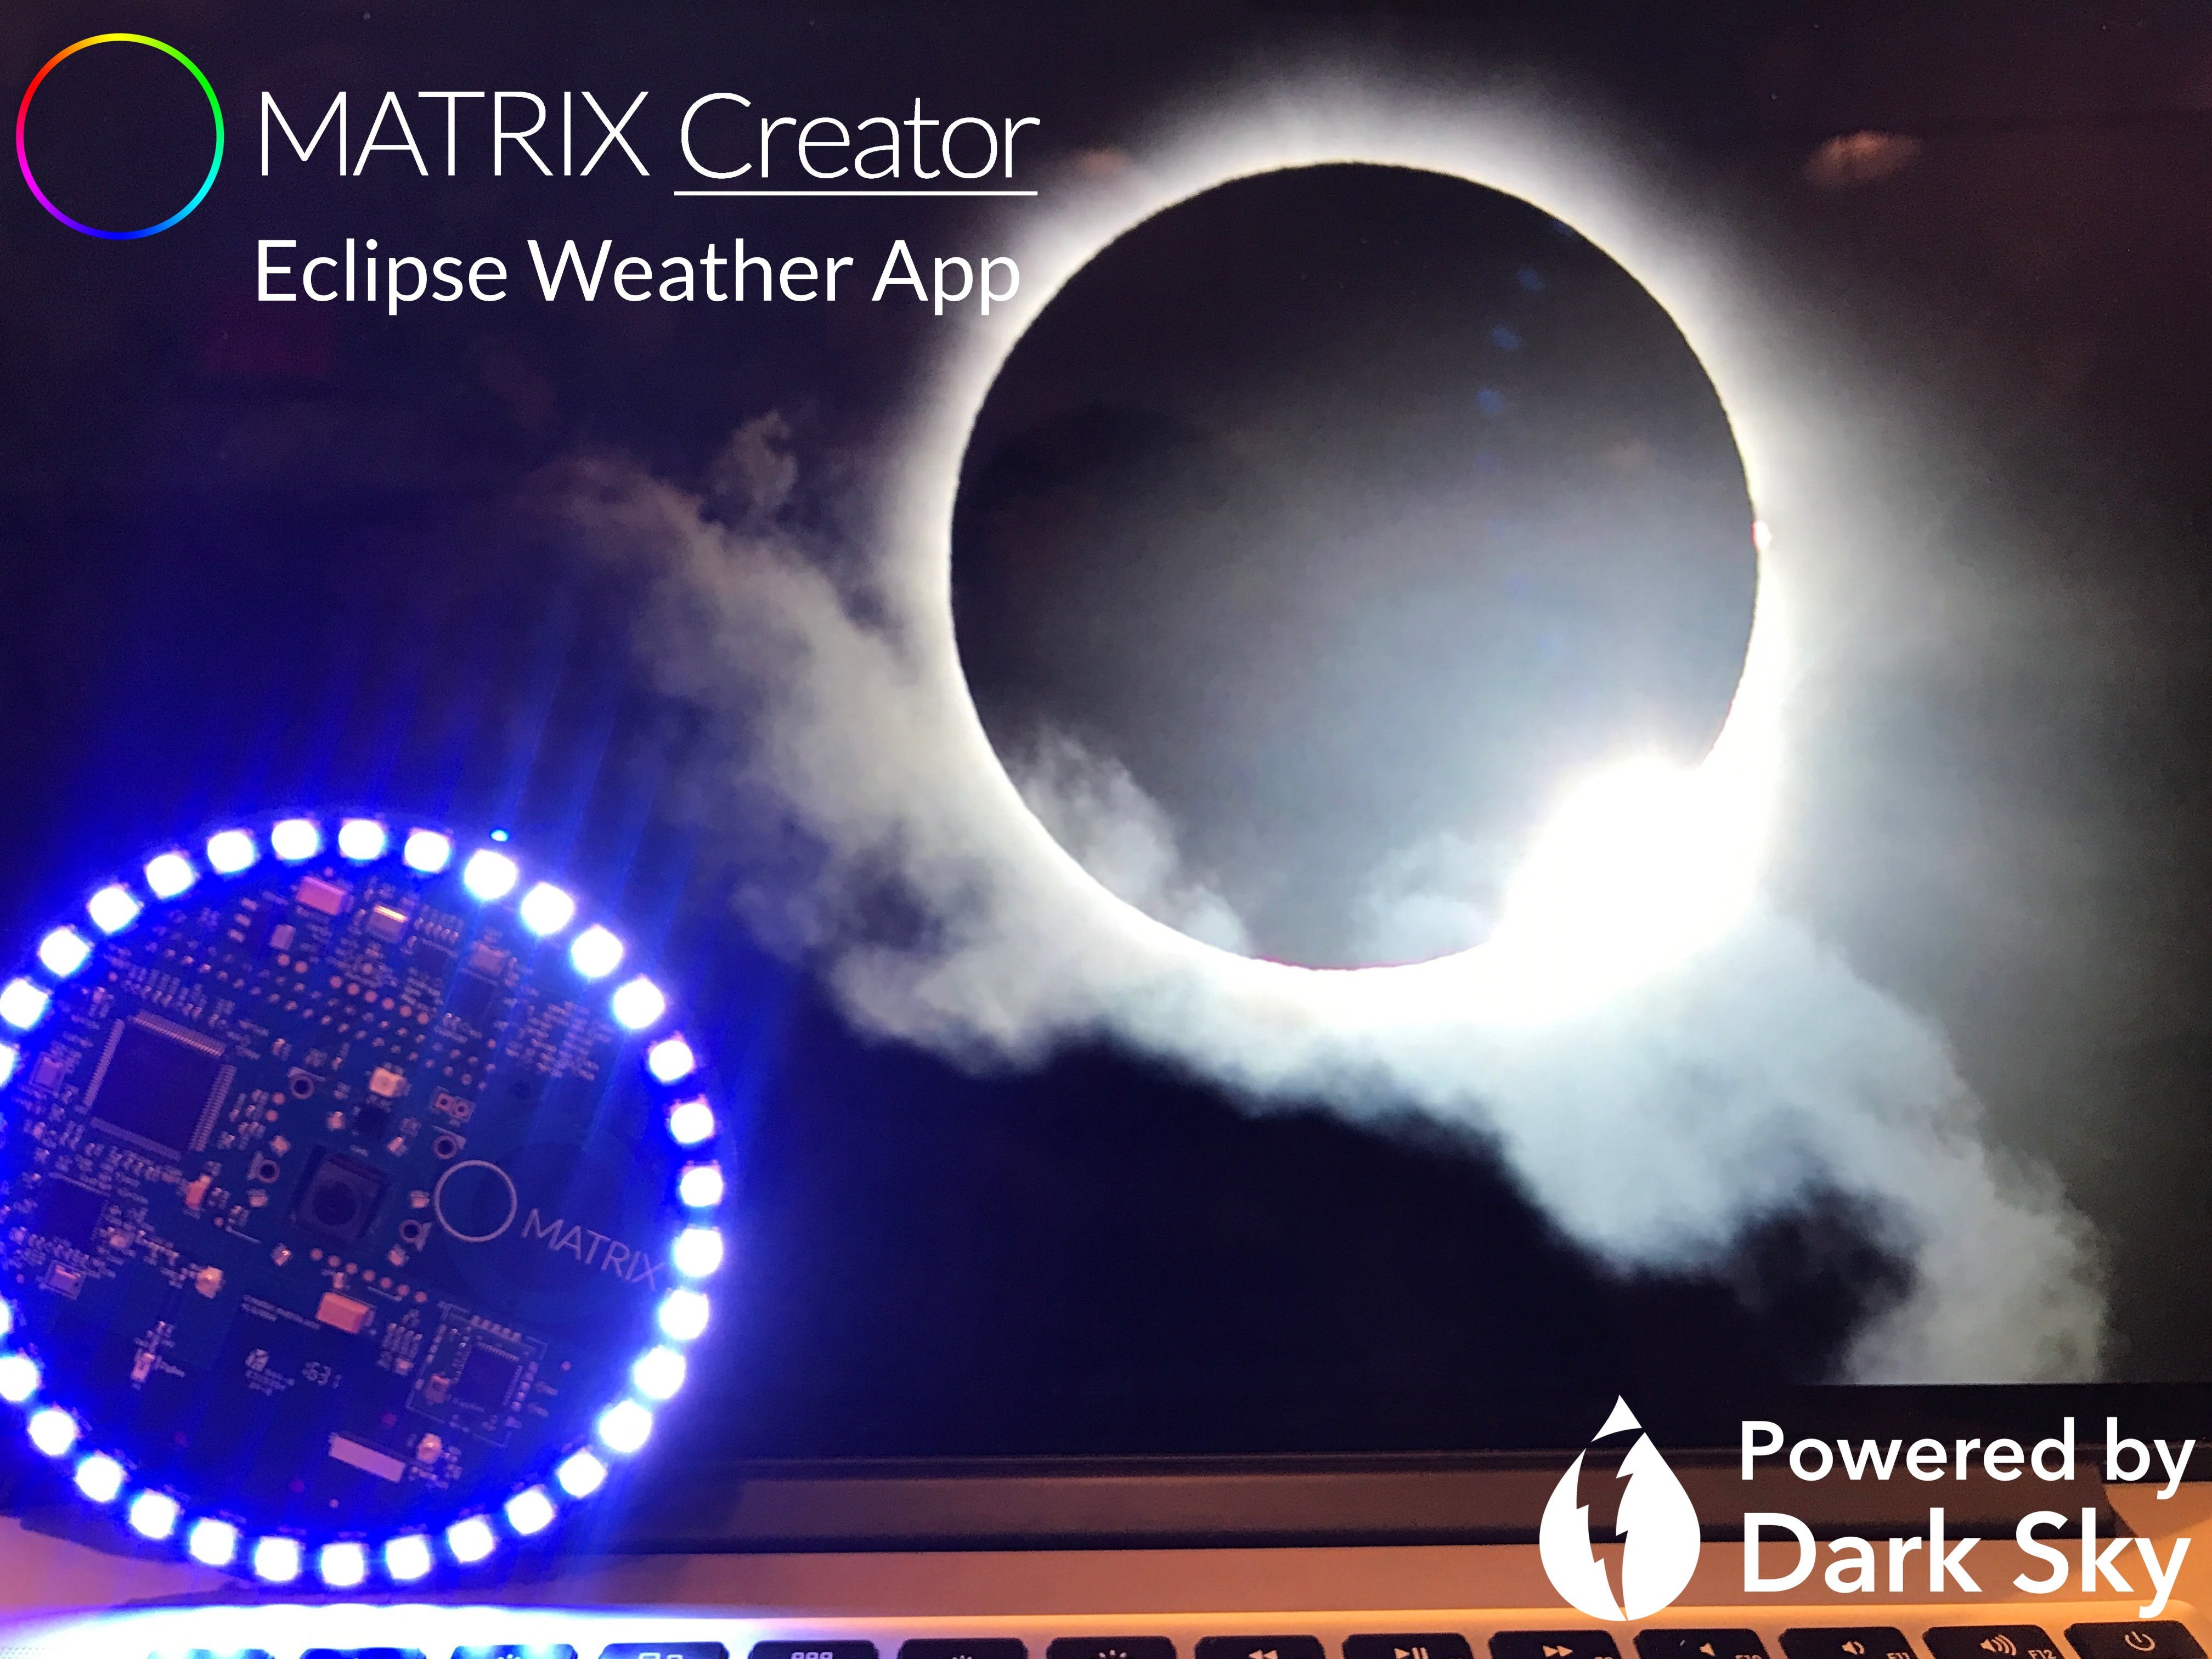 New MATRIX Creator Weather App on Eclipse Day